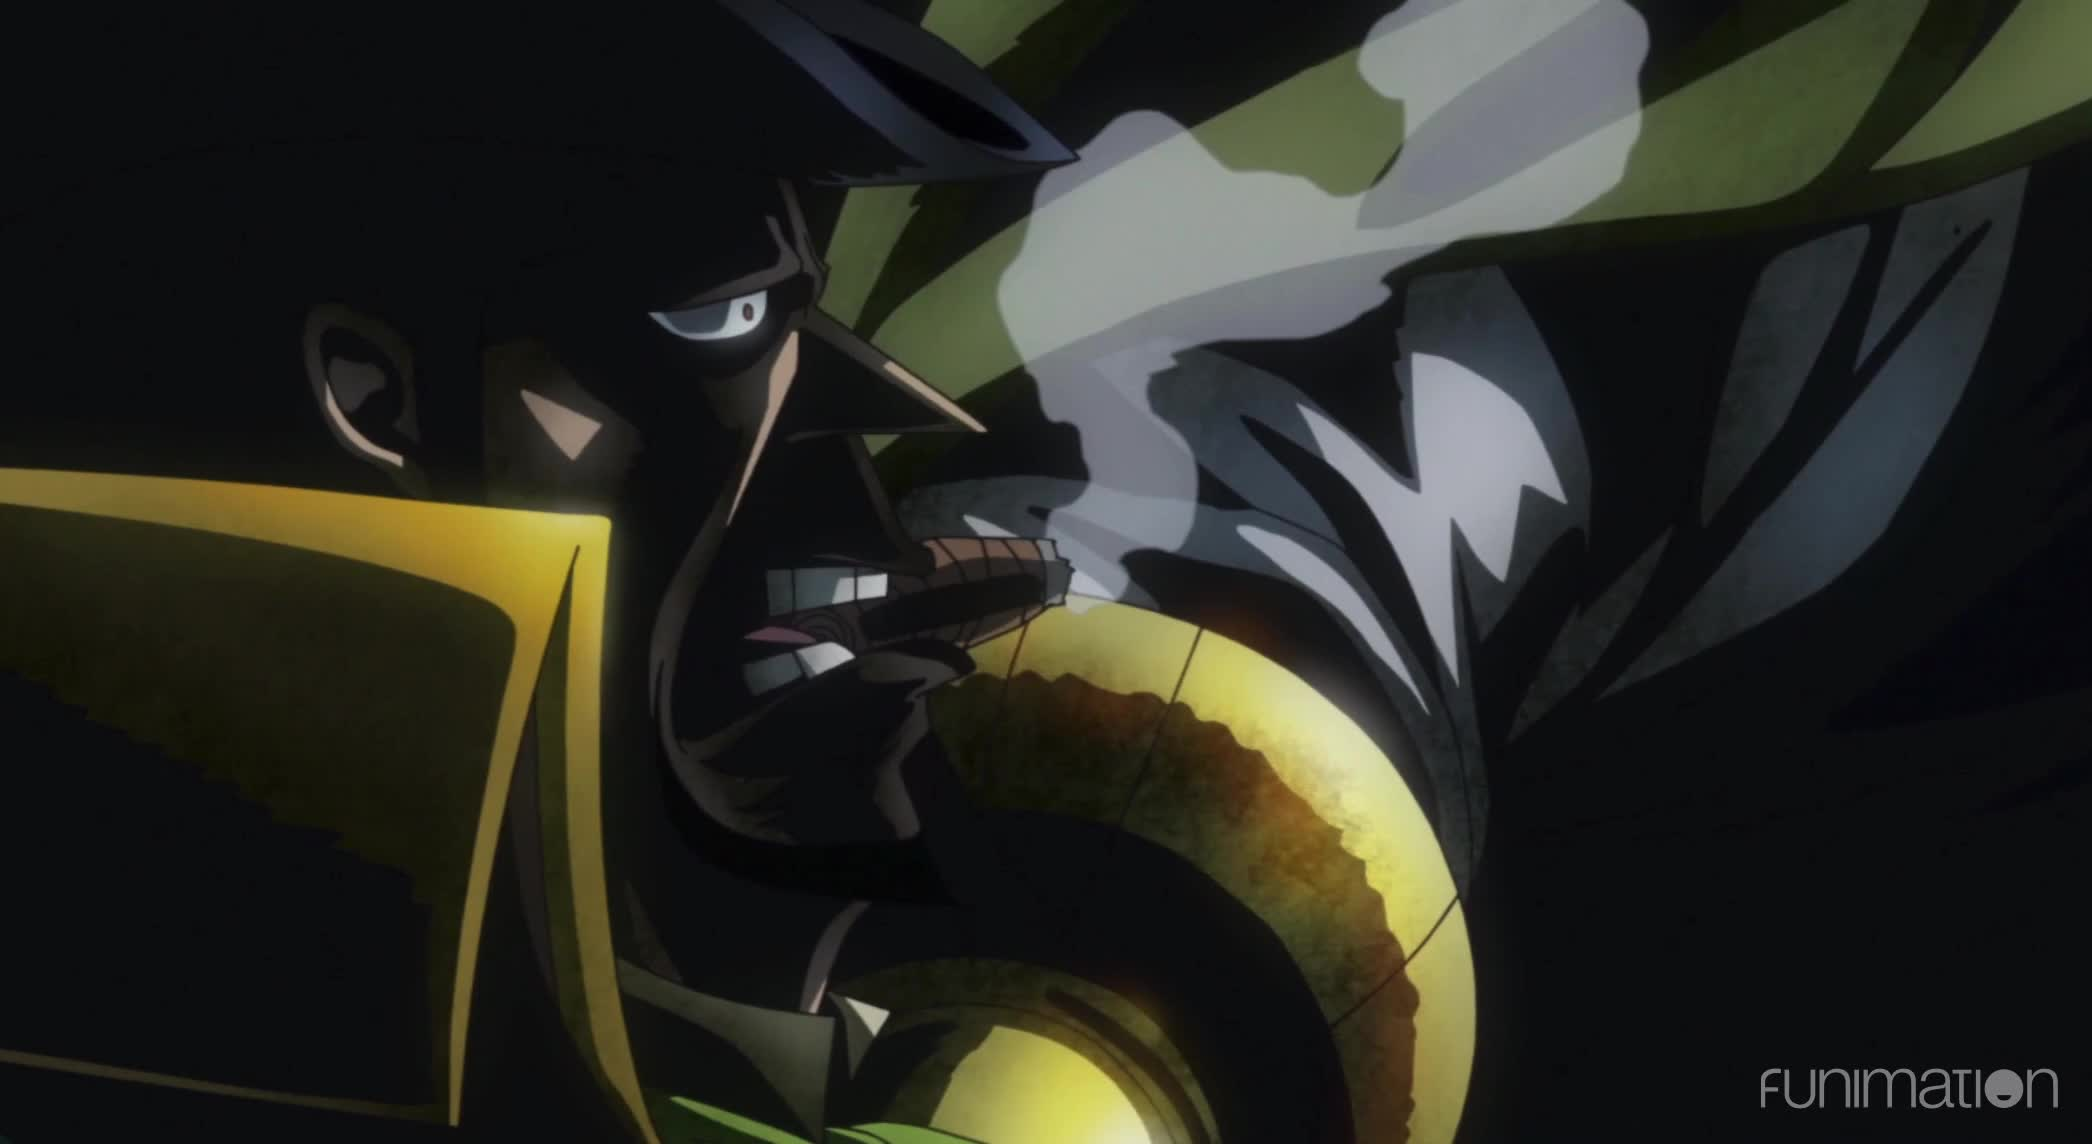 One Piece, One Piece episode 826, OnePiece, anime, ep826, funimation, funny, union GIFs